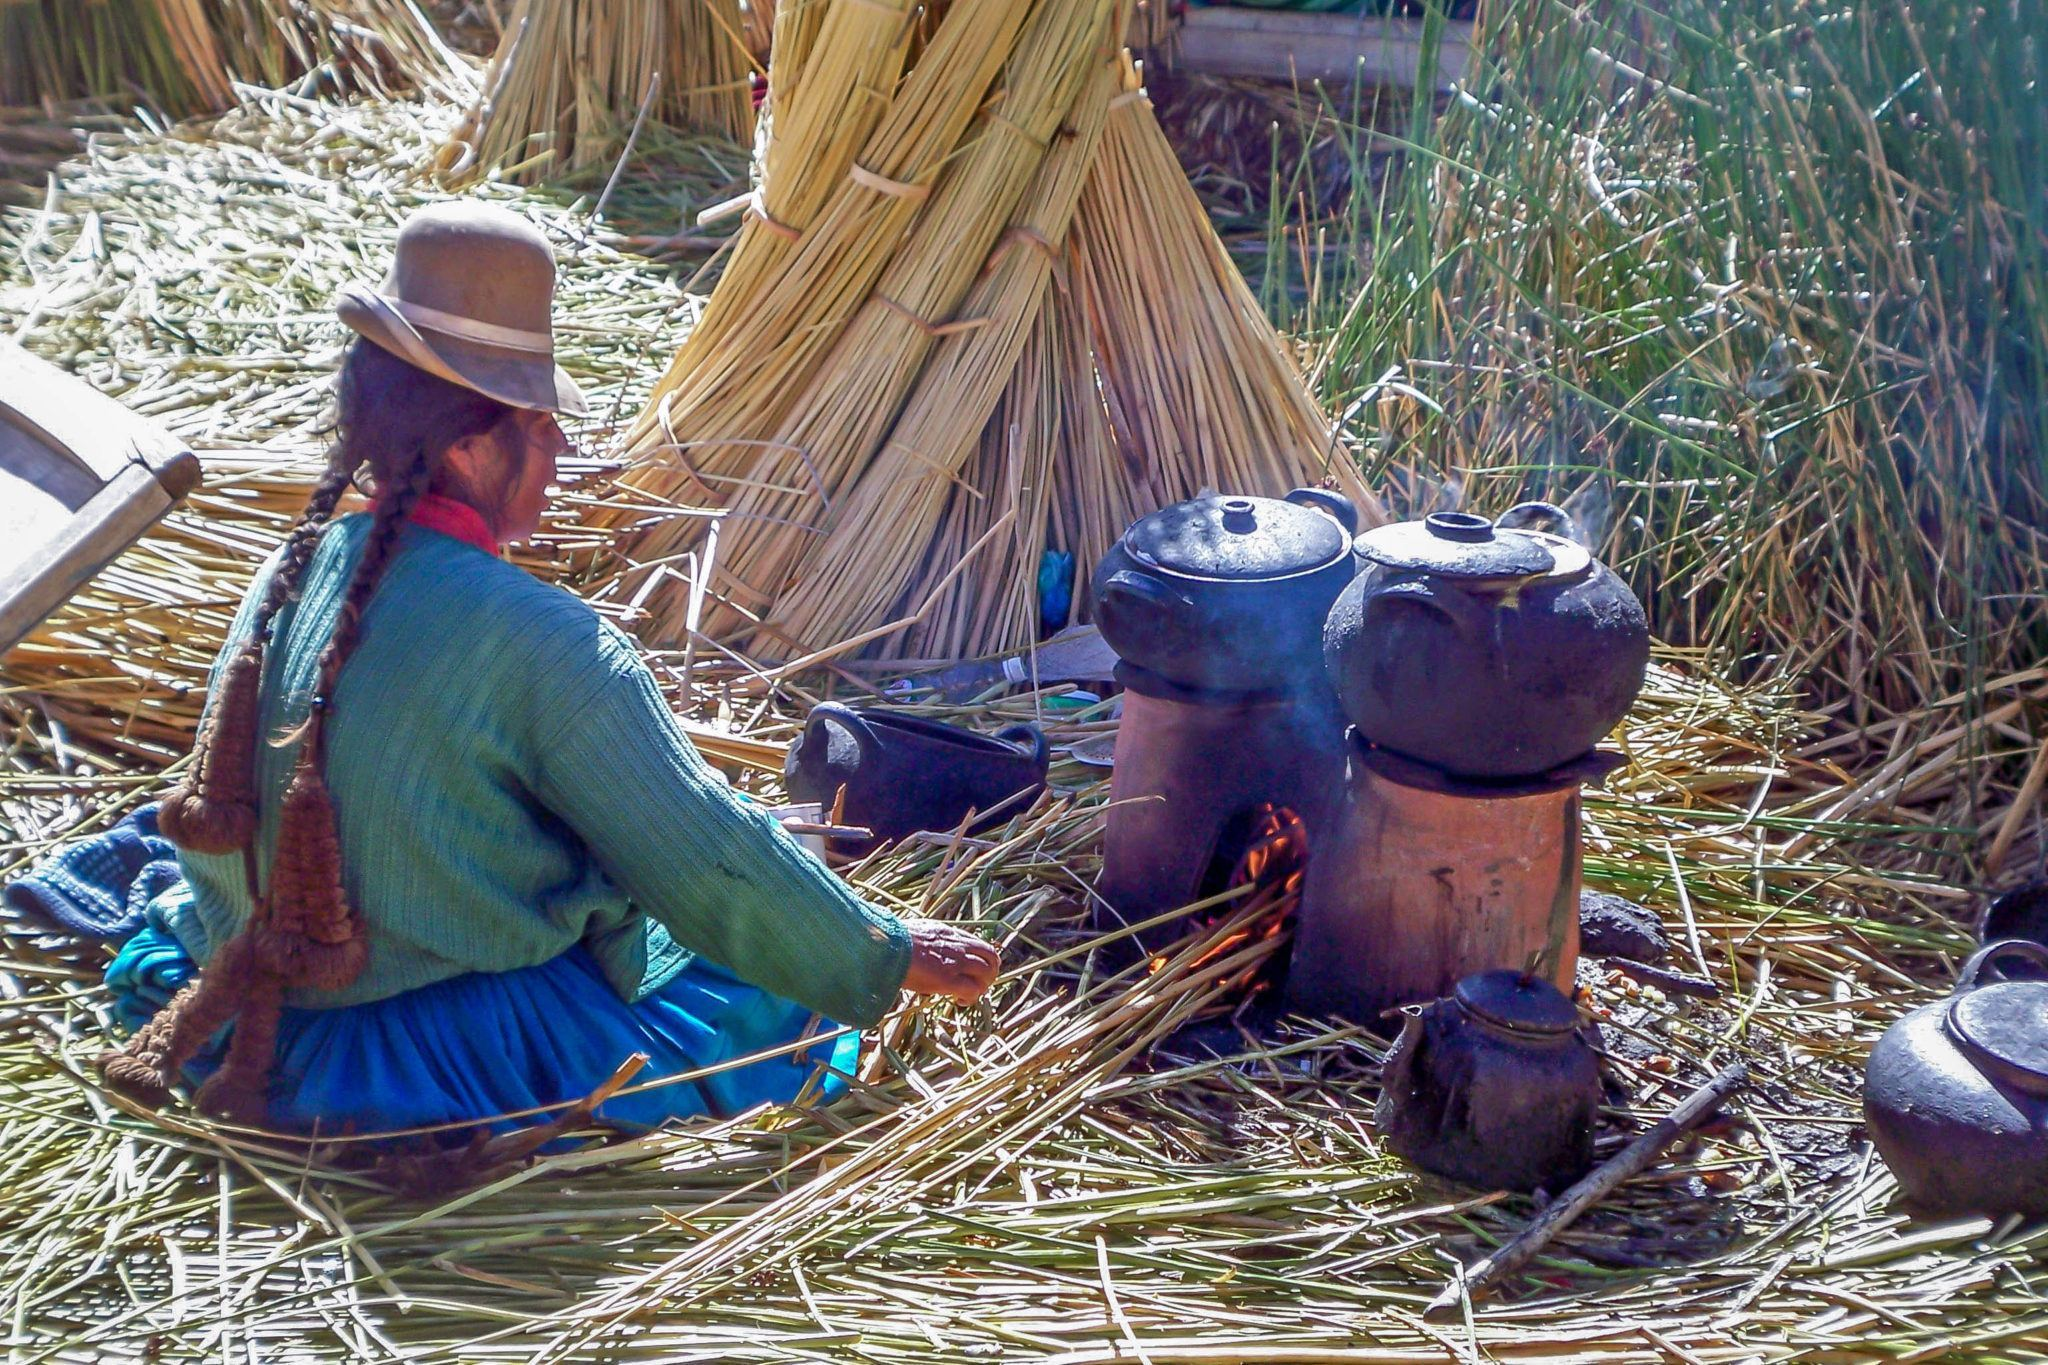 Cooking on the Uros Islands in Peru